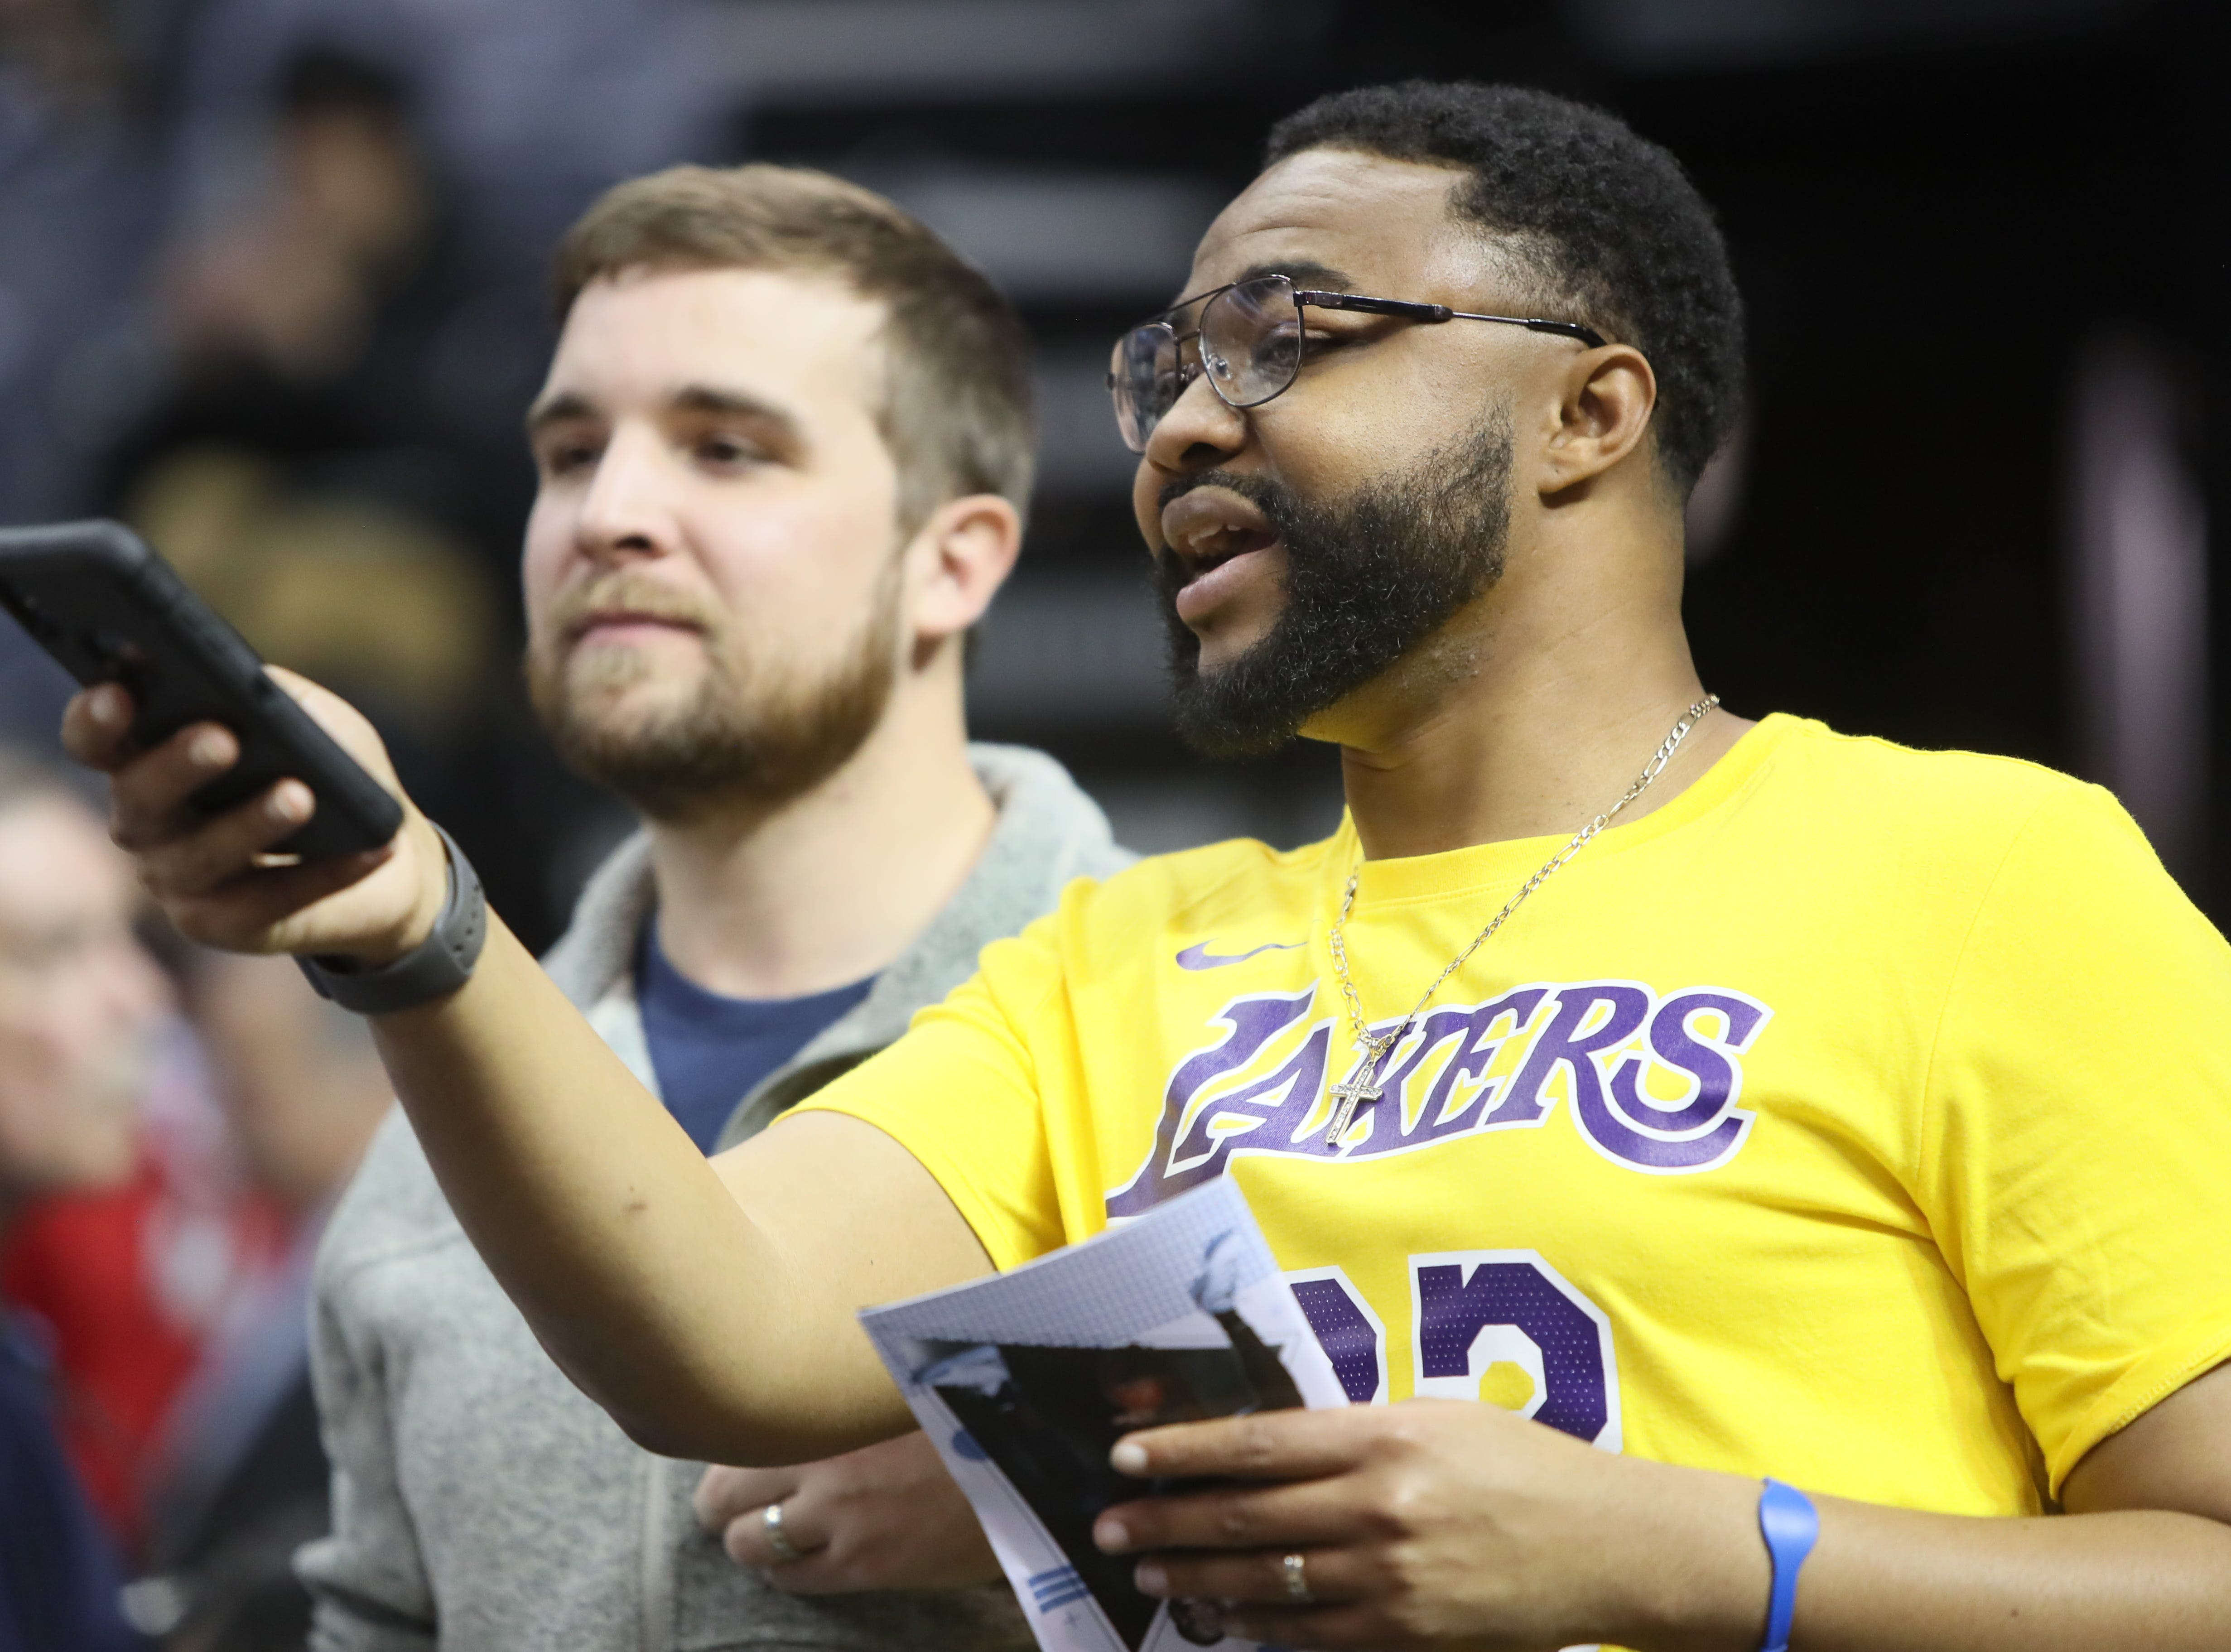 Fans cheer on the Memphis Grizzlies and Los Angeles Lakers during their game at the FedExForum on Saturday, Dec. 8, 2018.